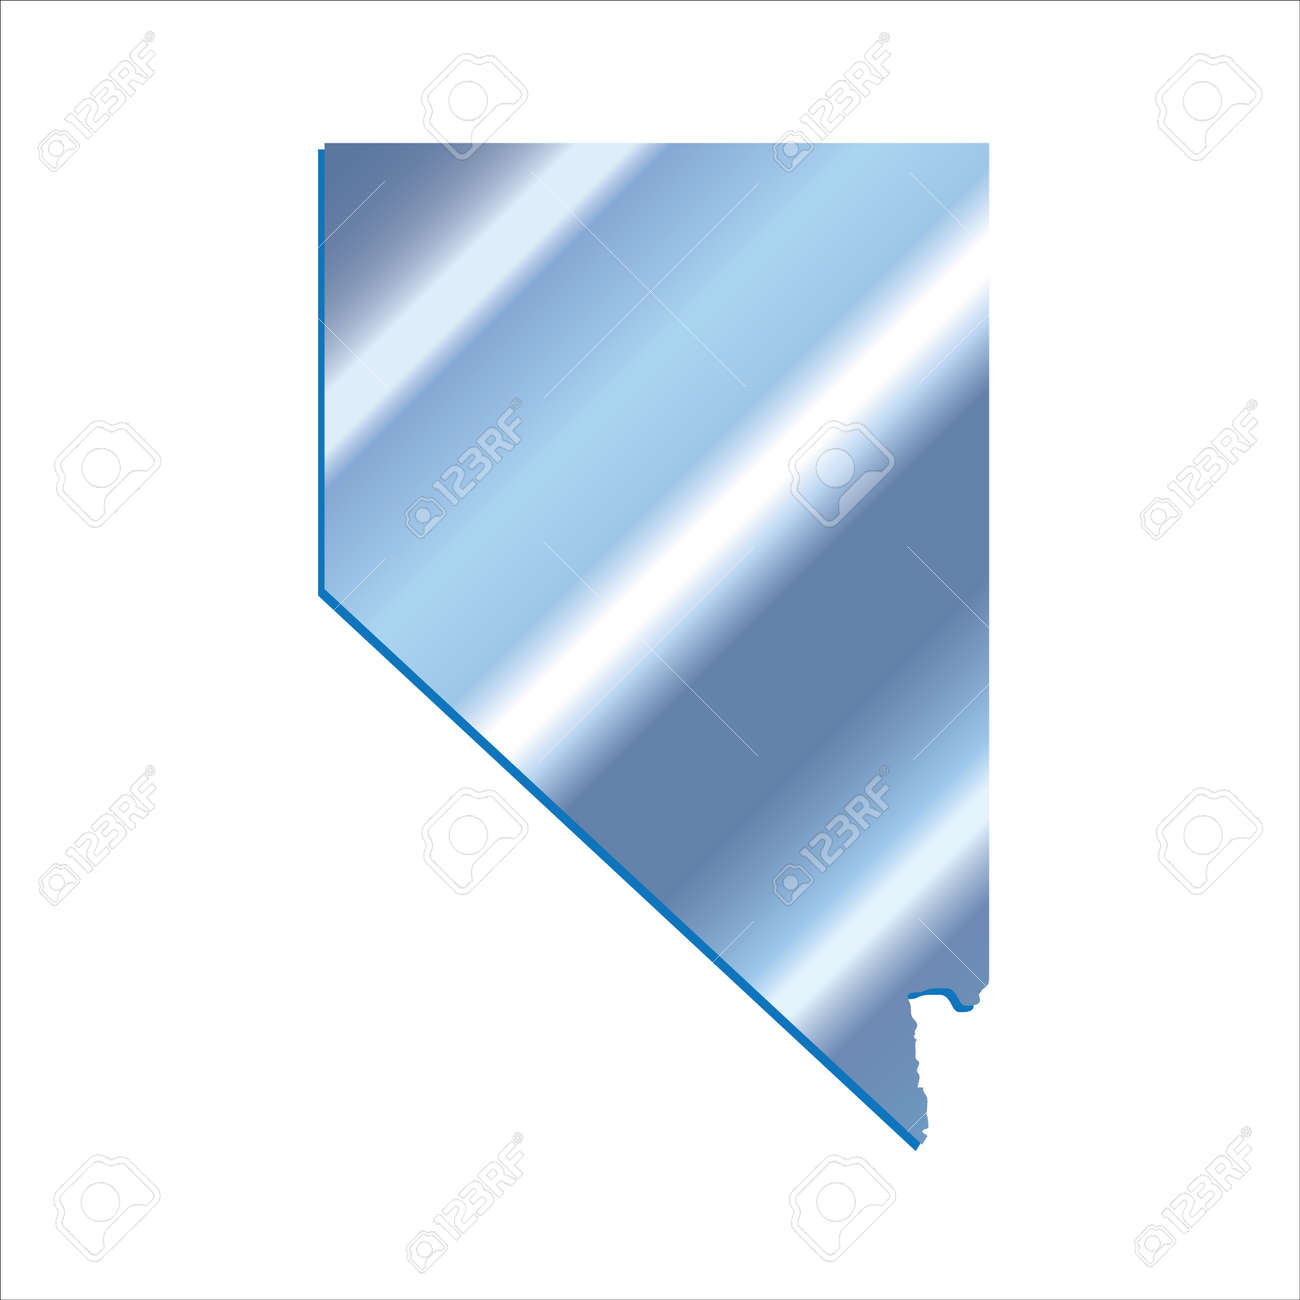 3d Nevada State Usa Iridium Blue Outline Map Royalty Free Cliparts Vectors And Stock Illustration Image 60468059